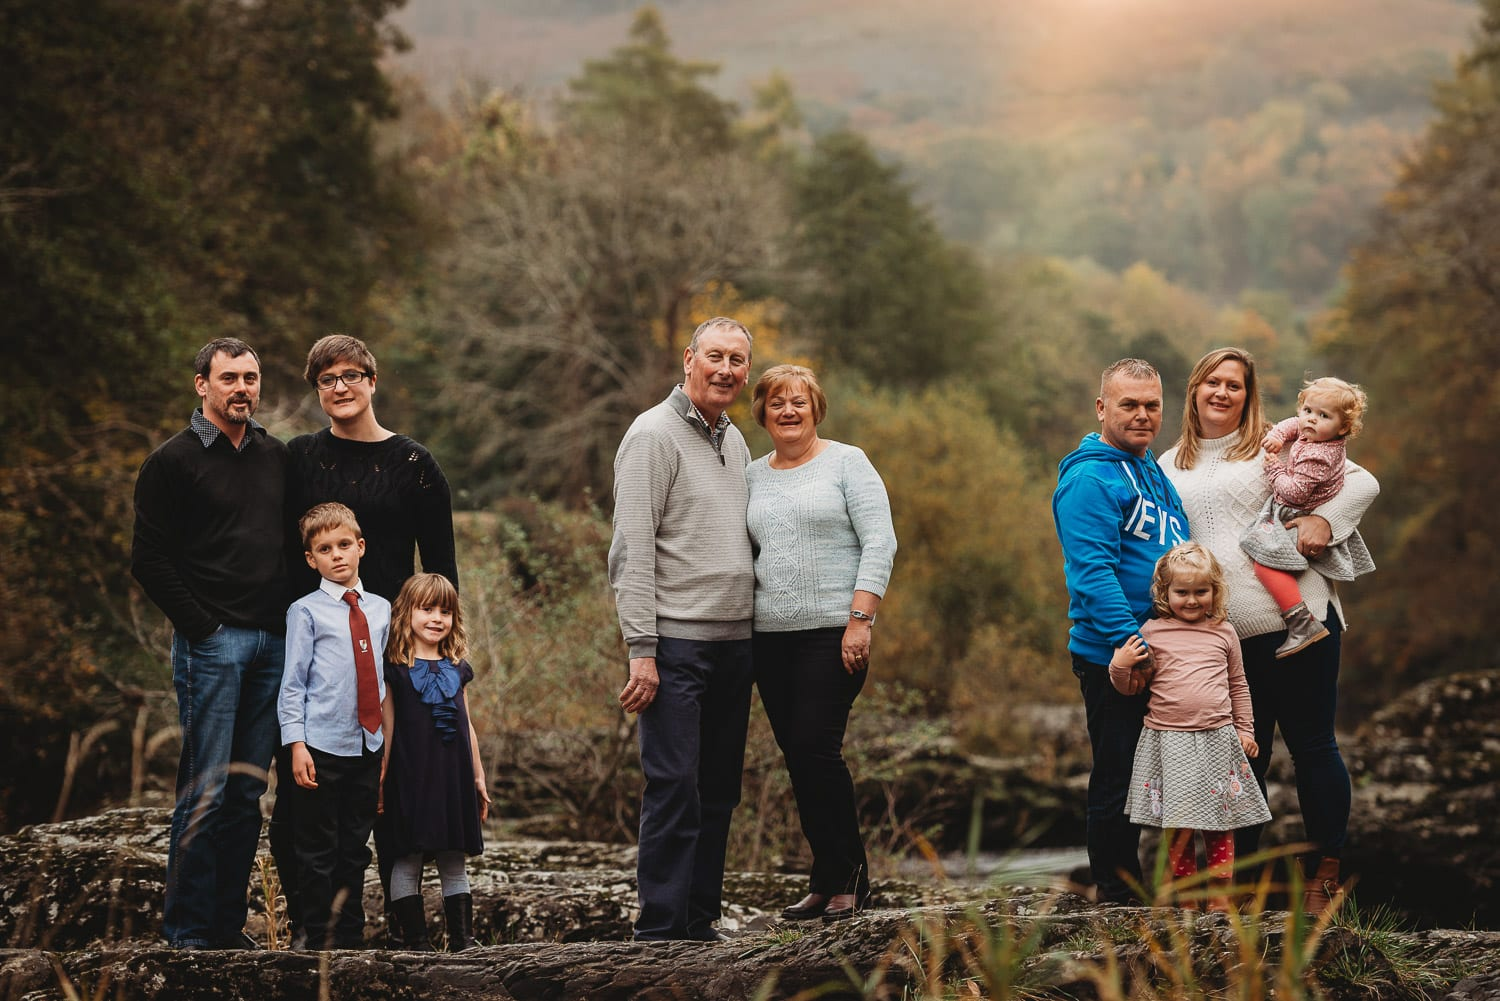 Llangollen Family Photographer - Babs Boardwell Wedding